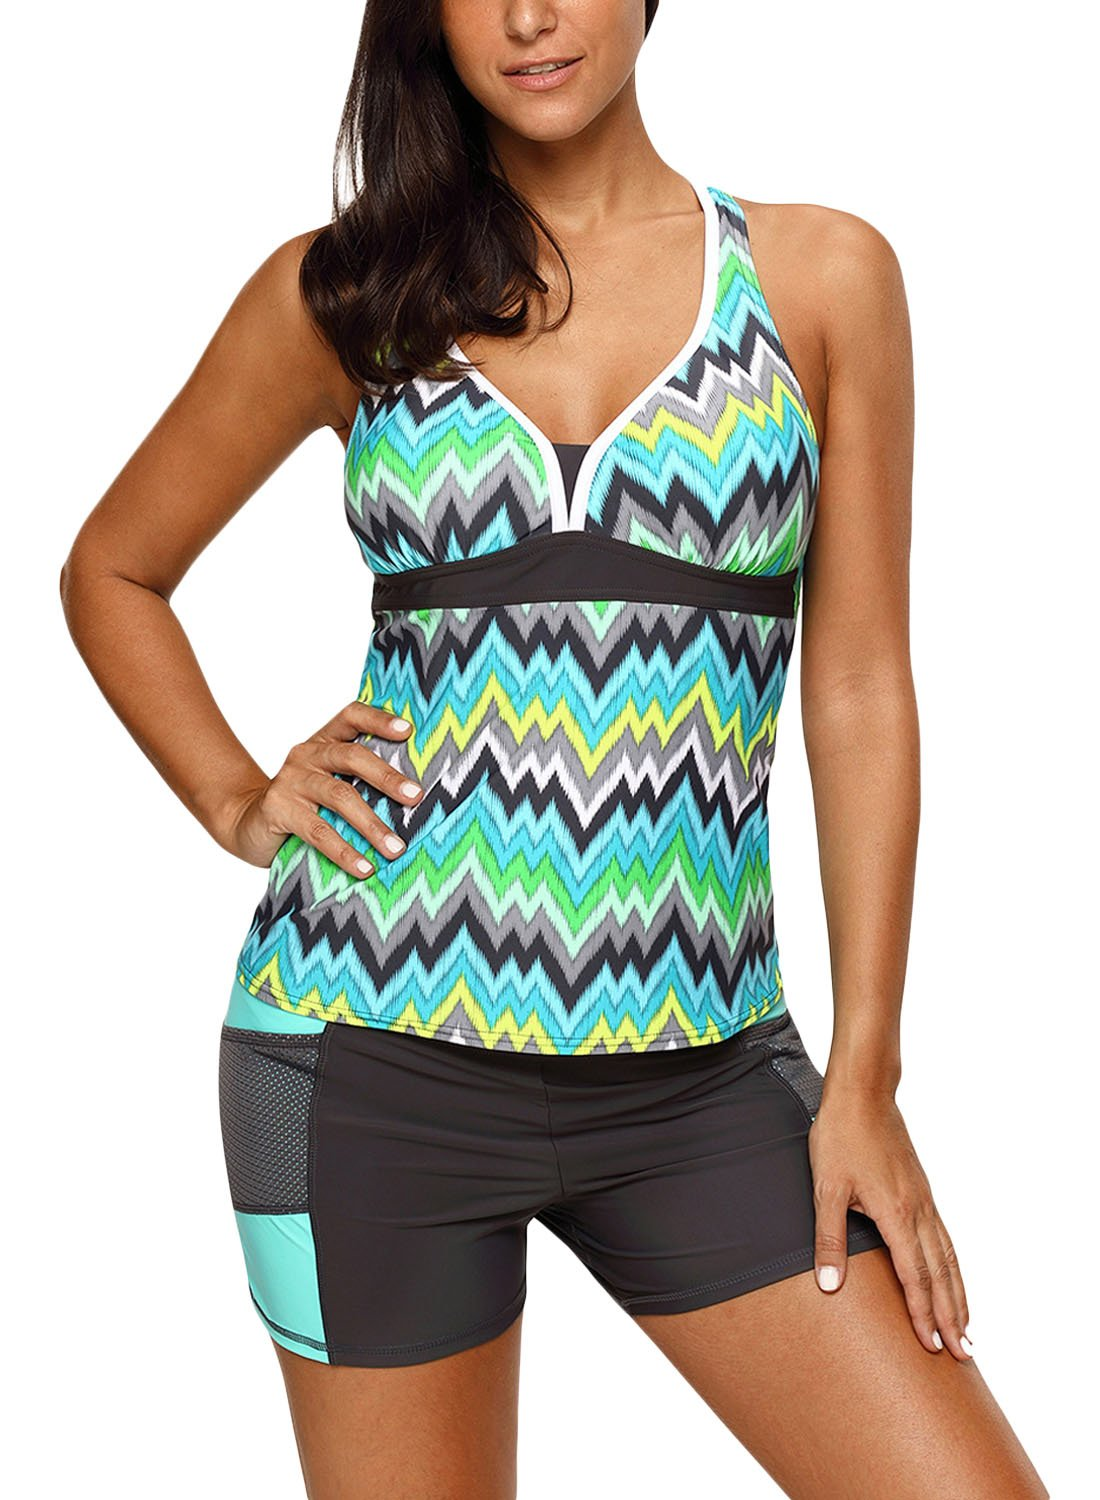 HOTAPEI Women's Racerback Tankini Set with Boyshort Modest Sexy Tankini Swimsuits for Women Ladies Two Piece Bathing Suit Green Tone Multicolor Striped US 4 6